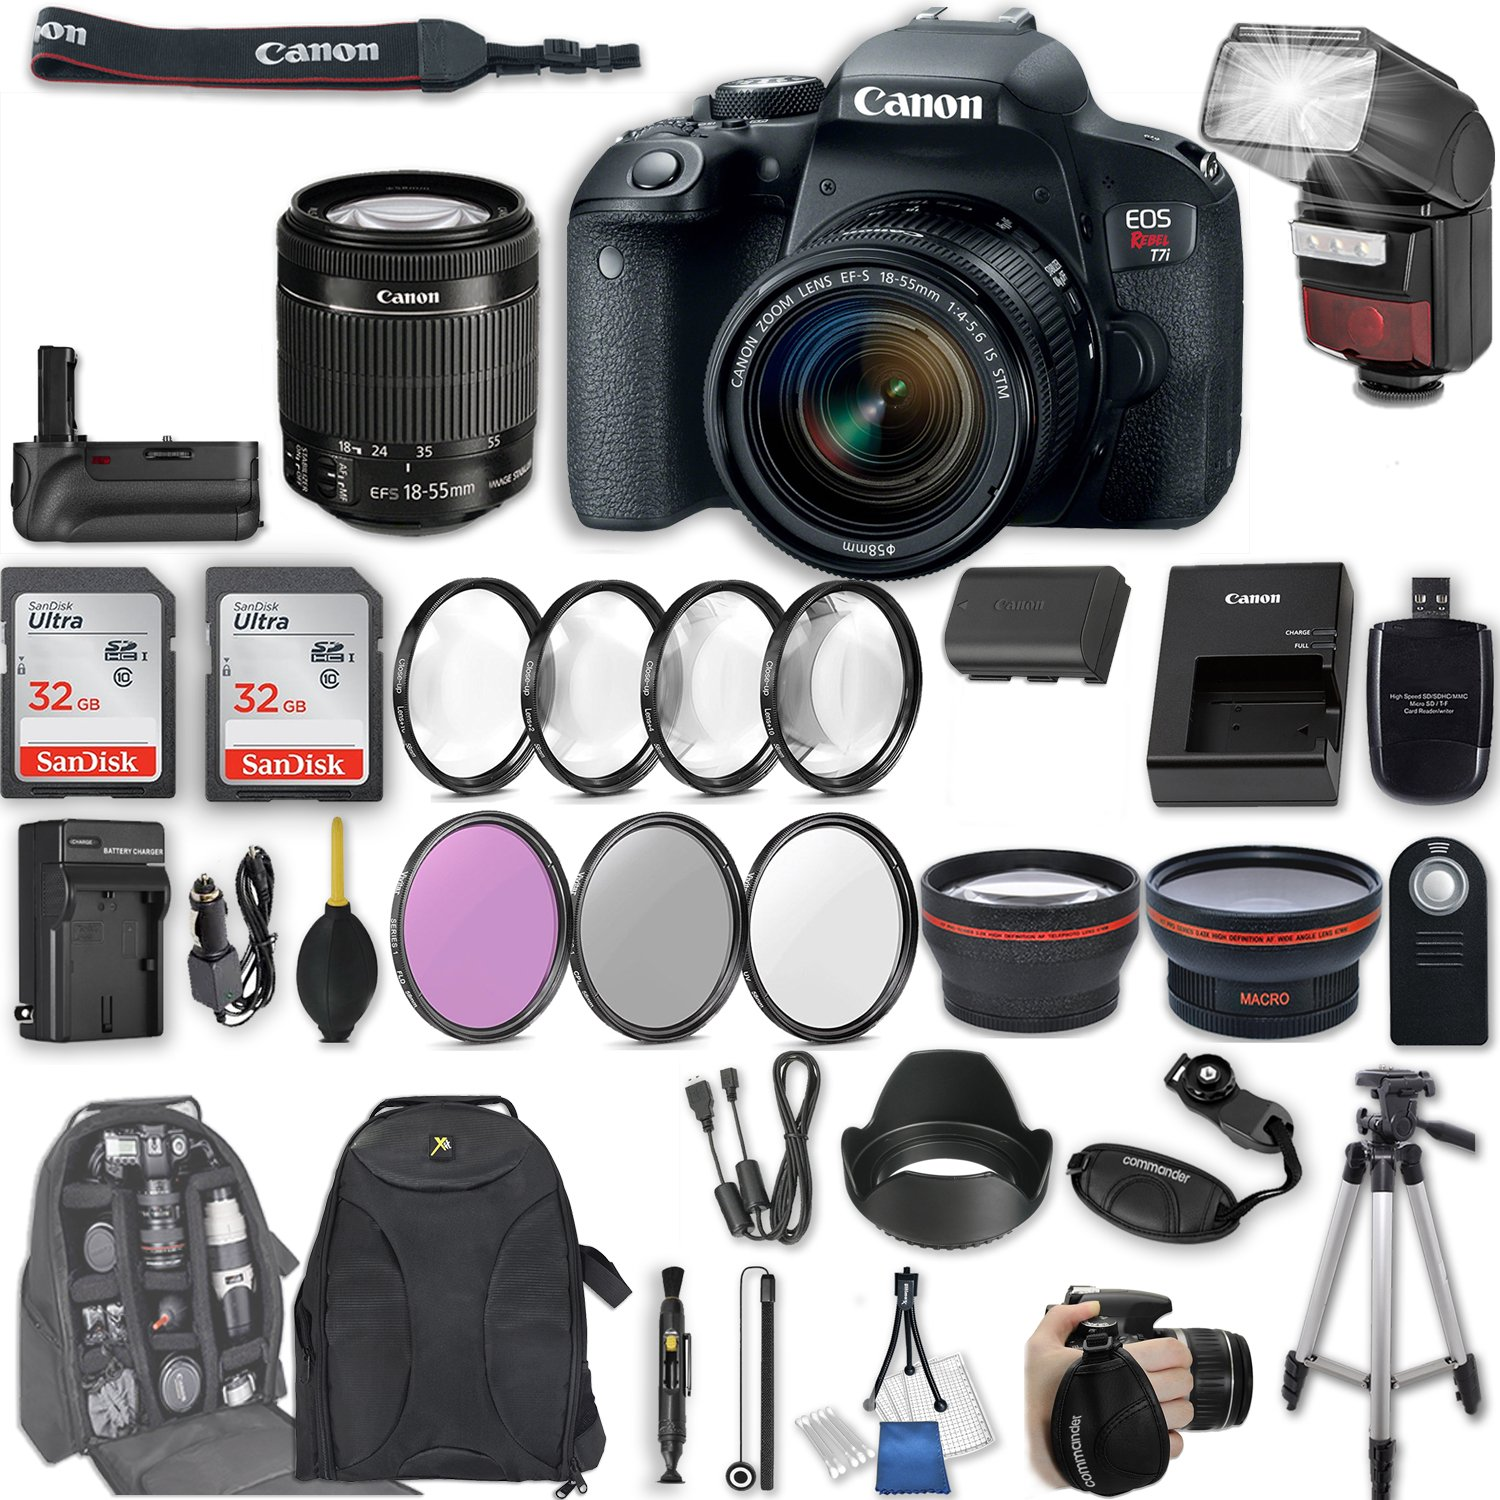 Canon EOS Rebel T7i DSLR Camera with EF-S 18-55mm f/4-5.6 IS STM Lens + 2Pcs 32GB Sandisk SD Memory + Automatic Flash + Battery Grip + Filter & Macro Kits + Backpack + 50'' Tripod + More